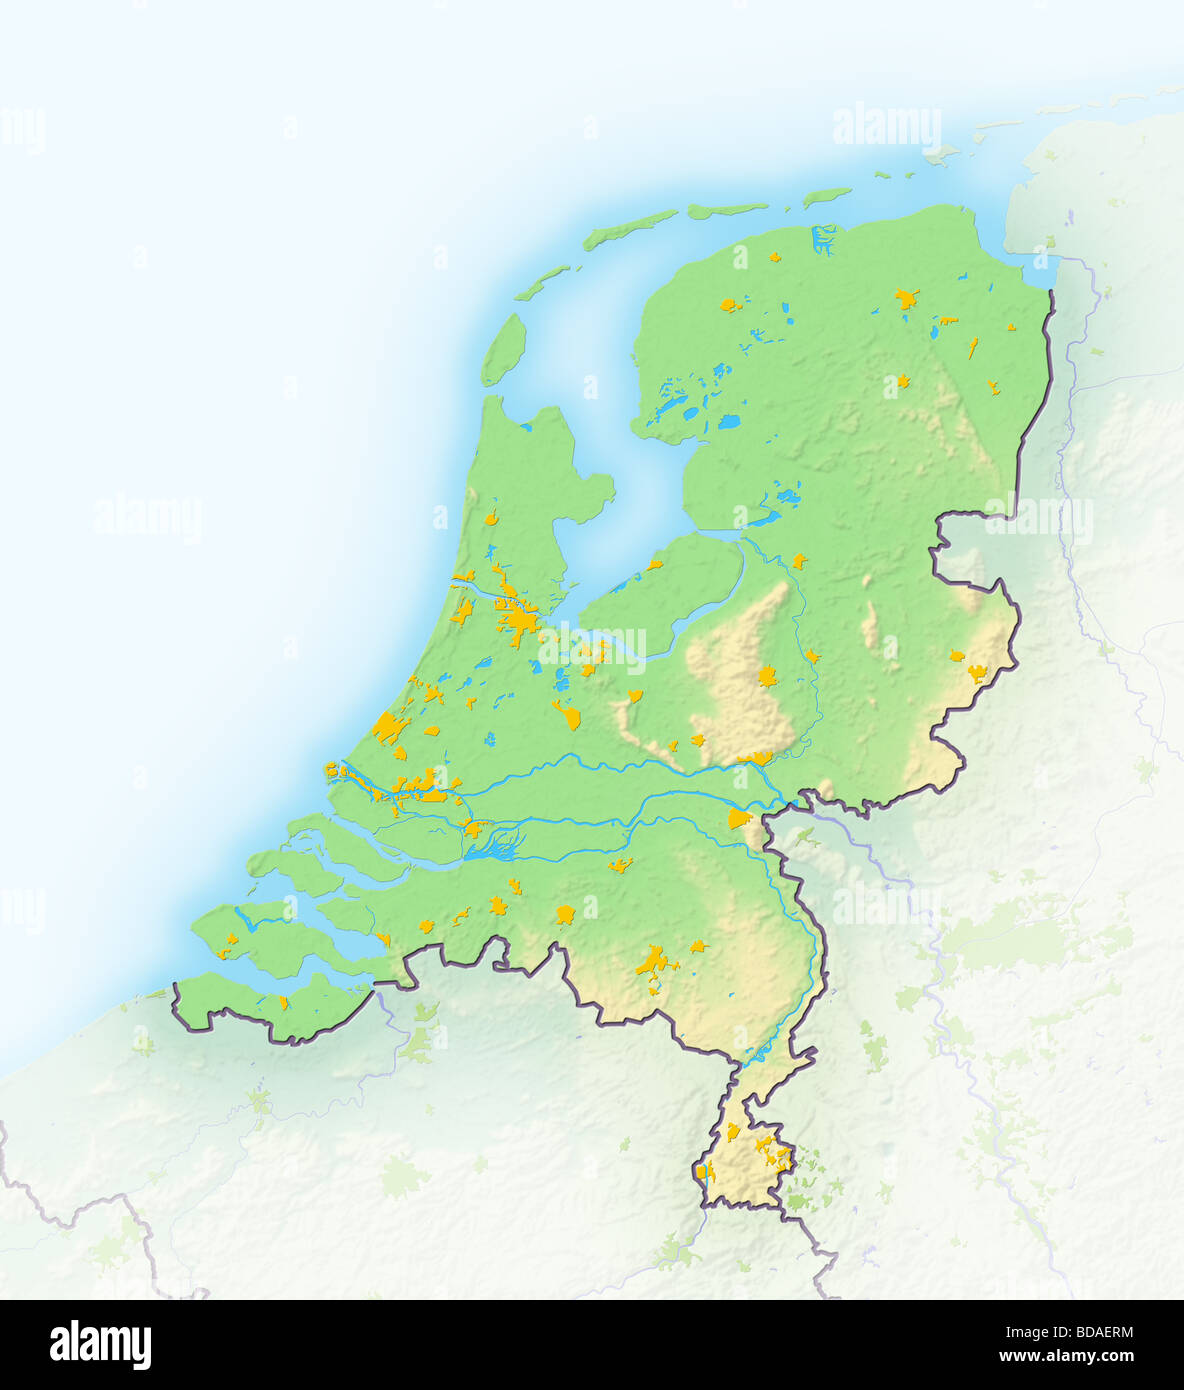 The Netherlands Map Stock Photos & The Netherlands Map Stock Images ...